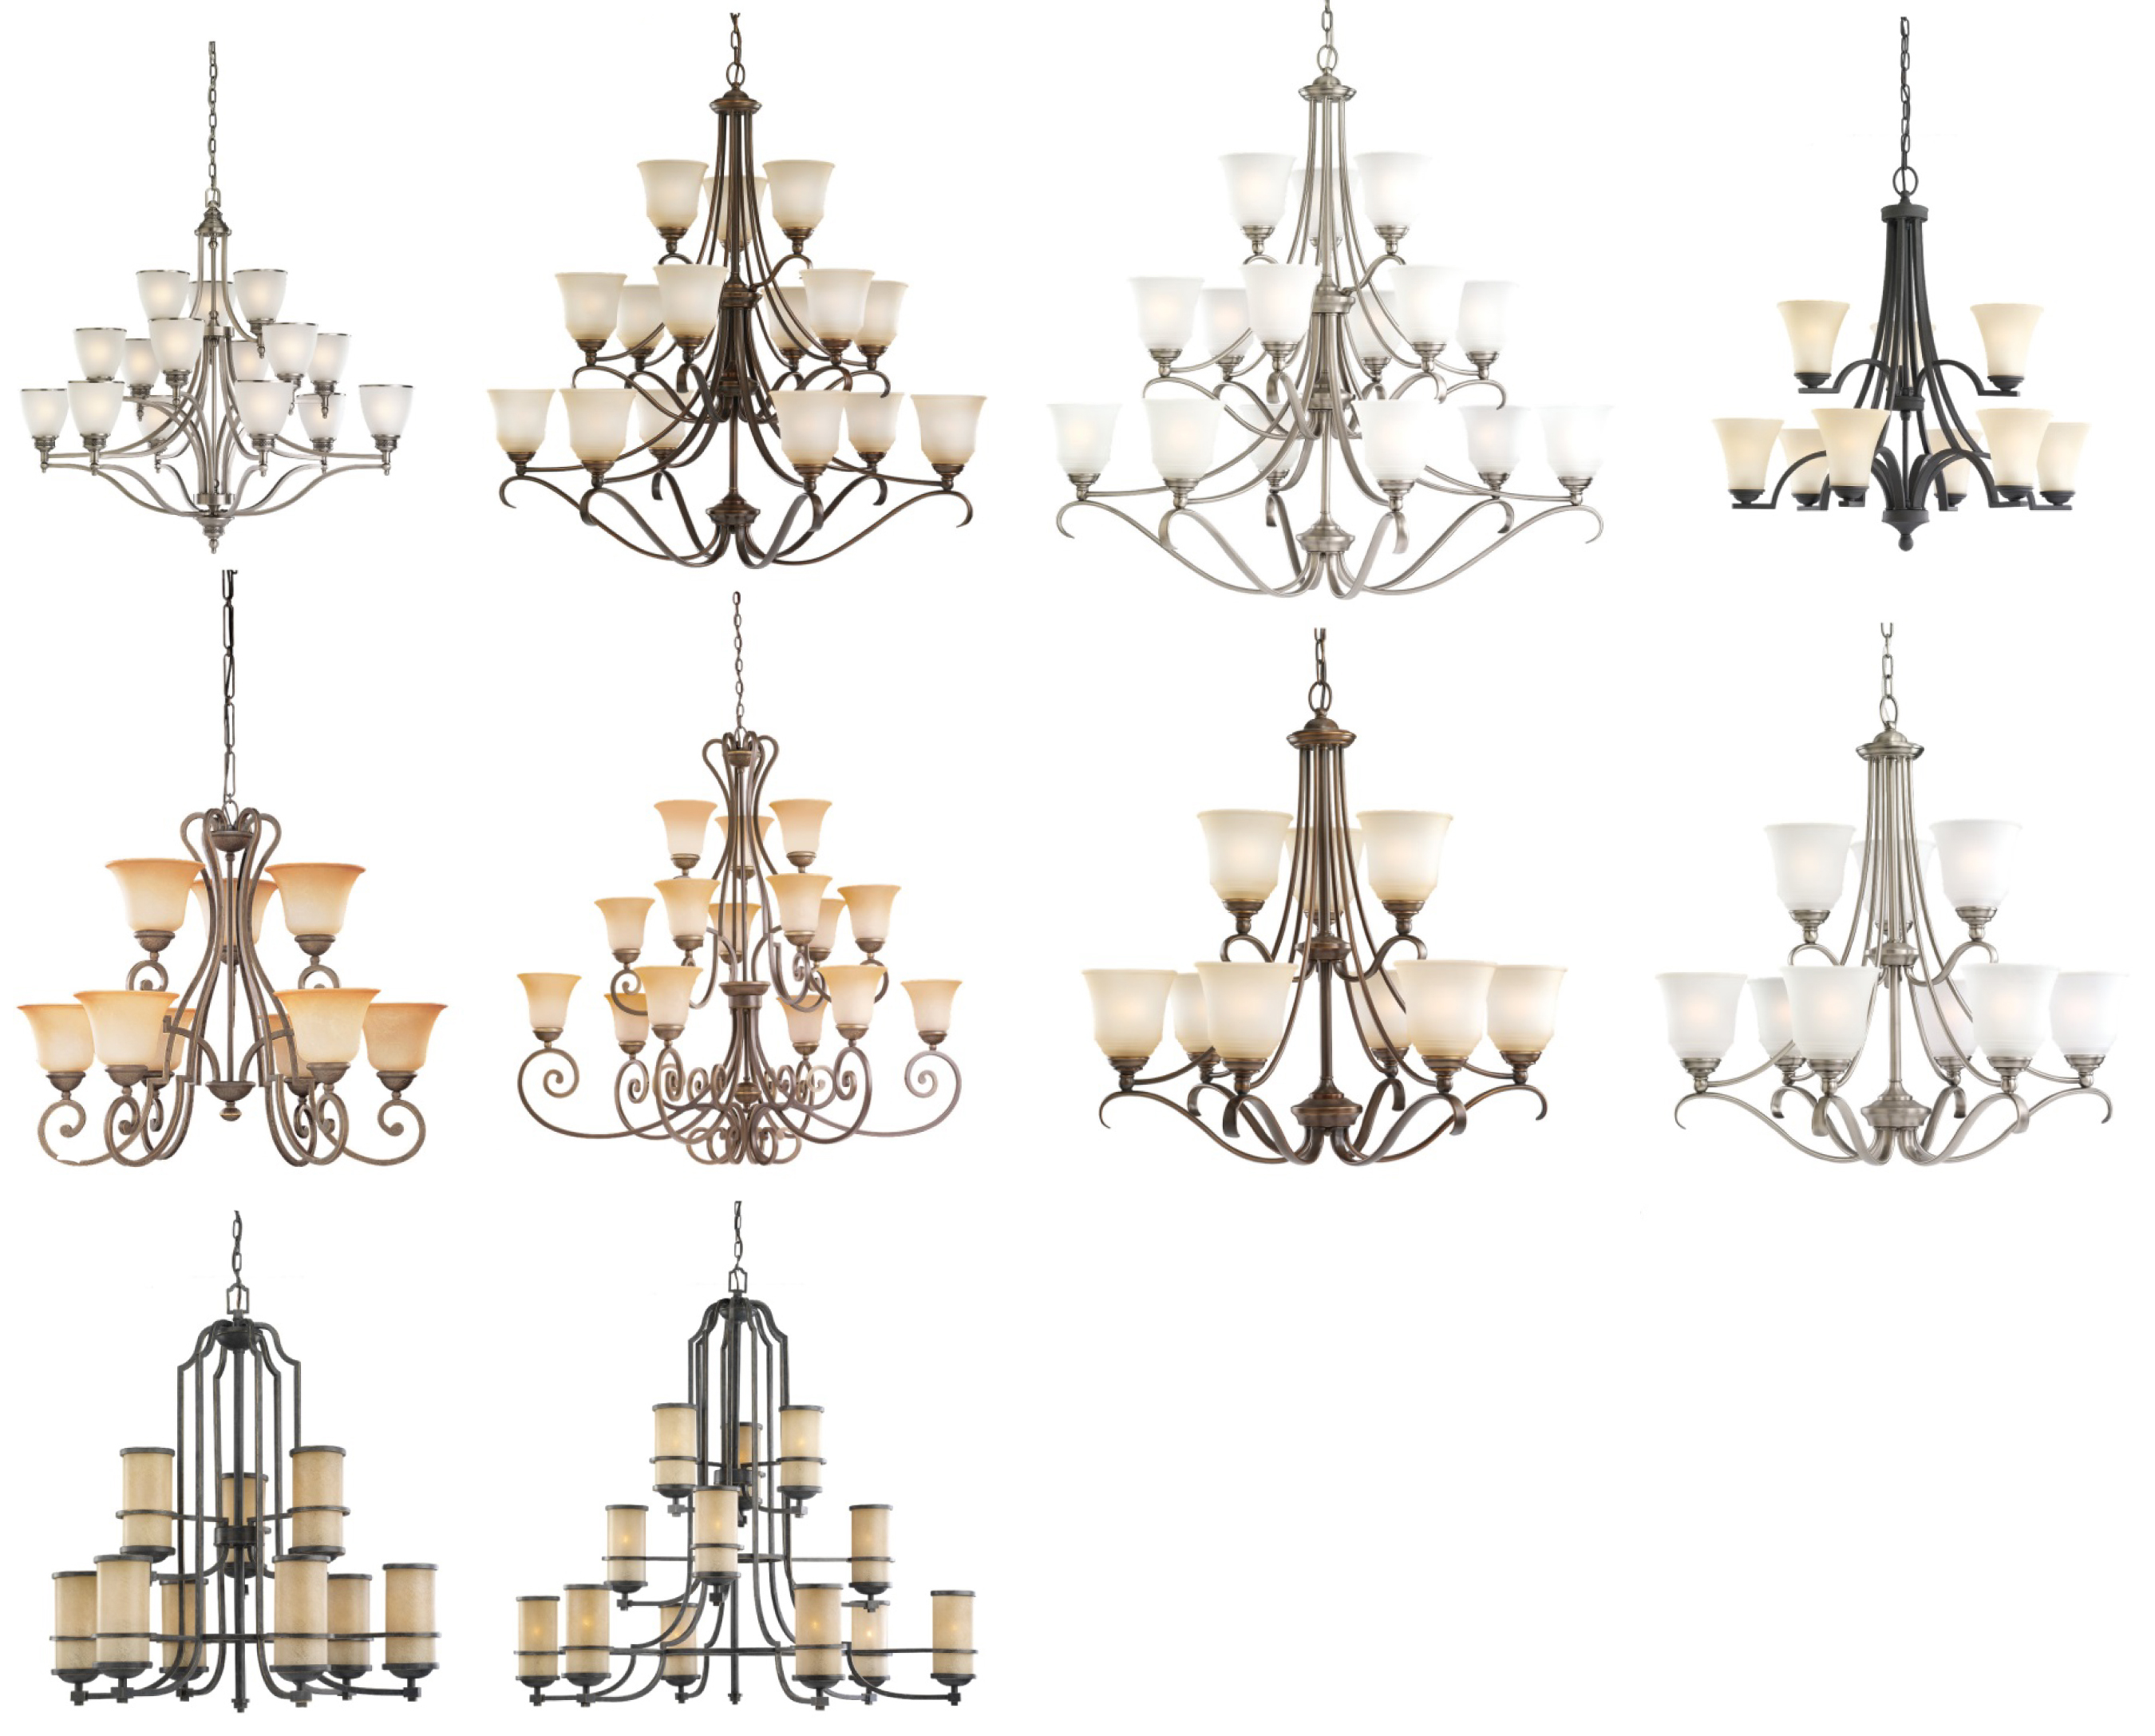 10 Versions Of Recalled Seagull Chandeliers Please See Chart In Recall For Full Images